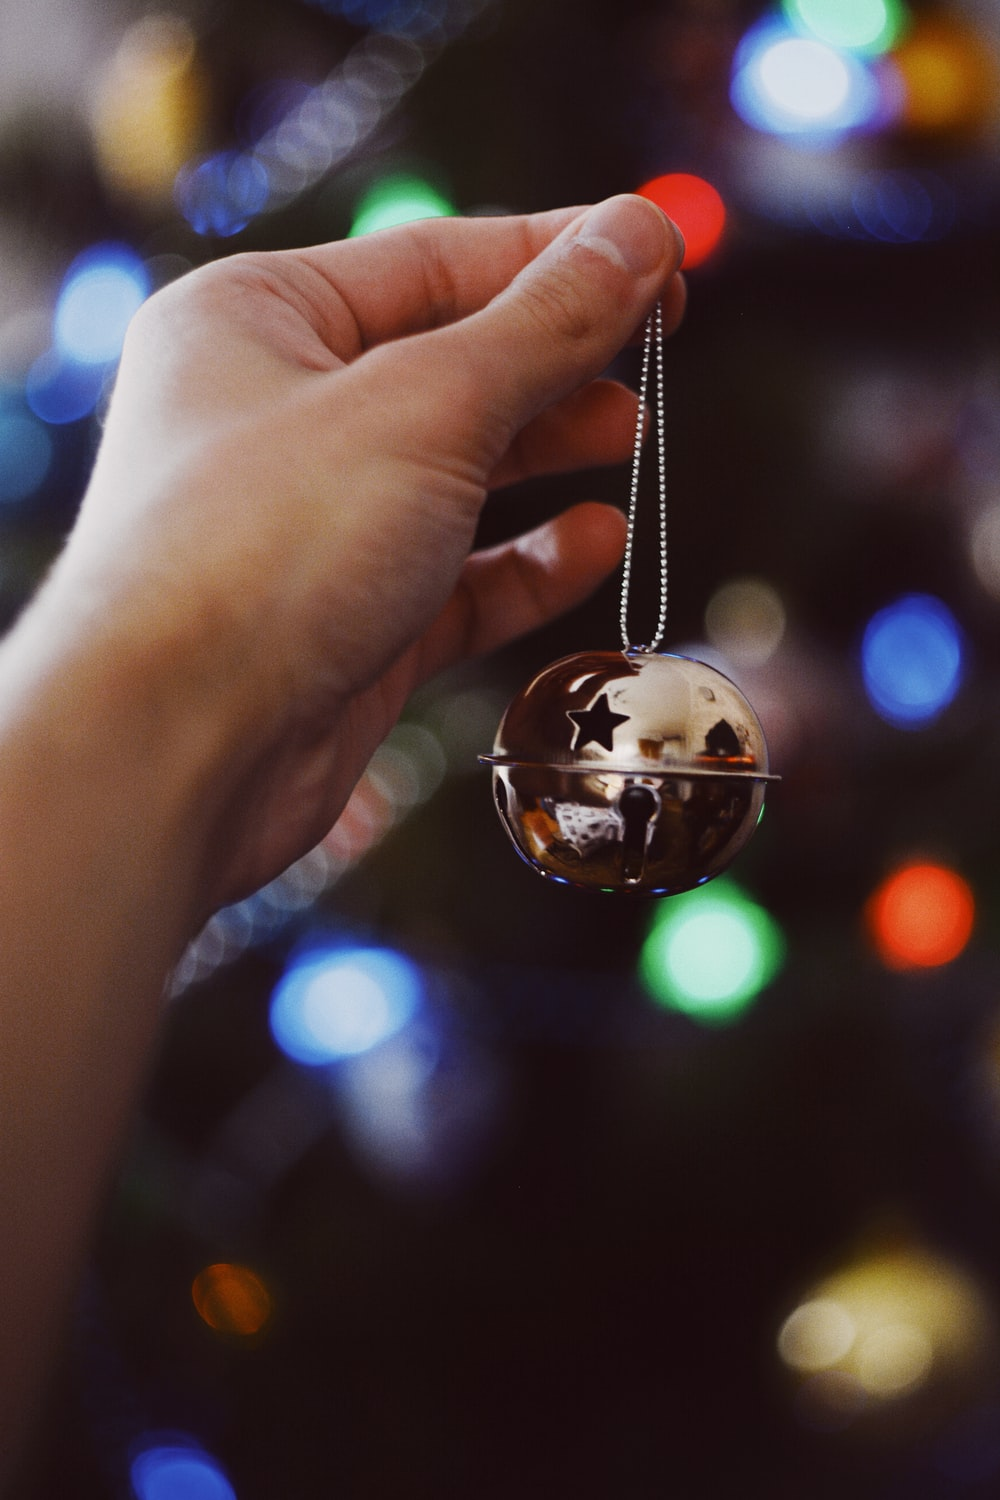 person holding Christmas ornament